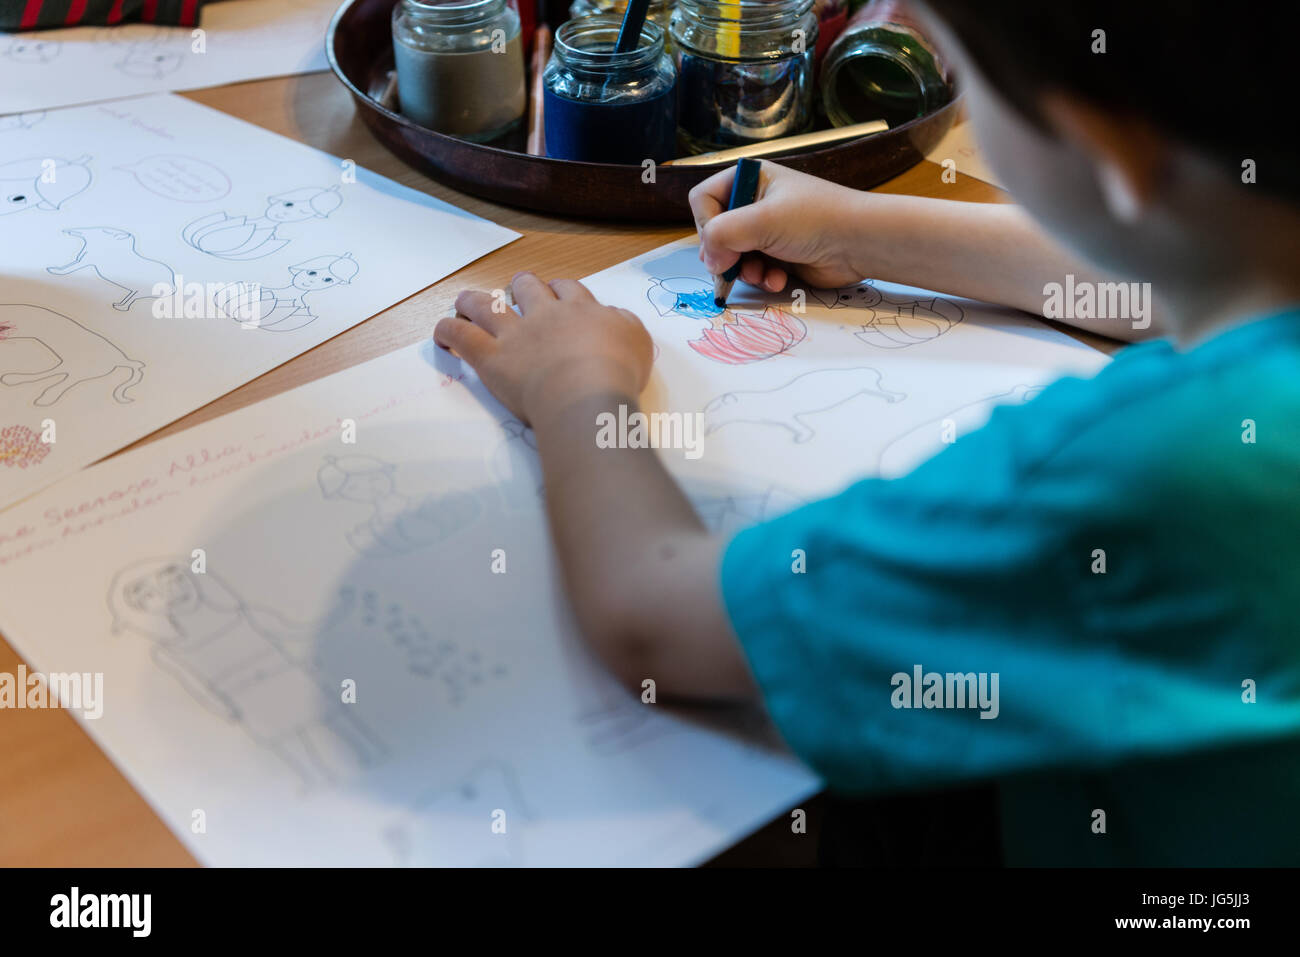 Child drawing with colored pencils in kindergarten, close-up - Stock Image